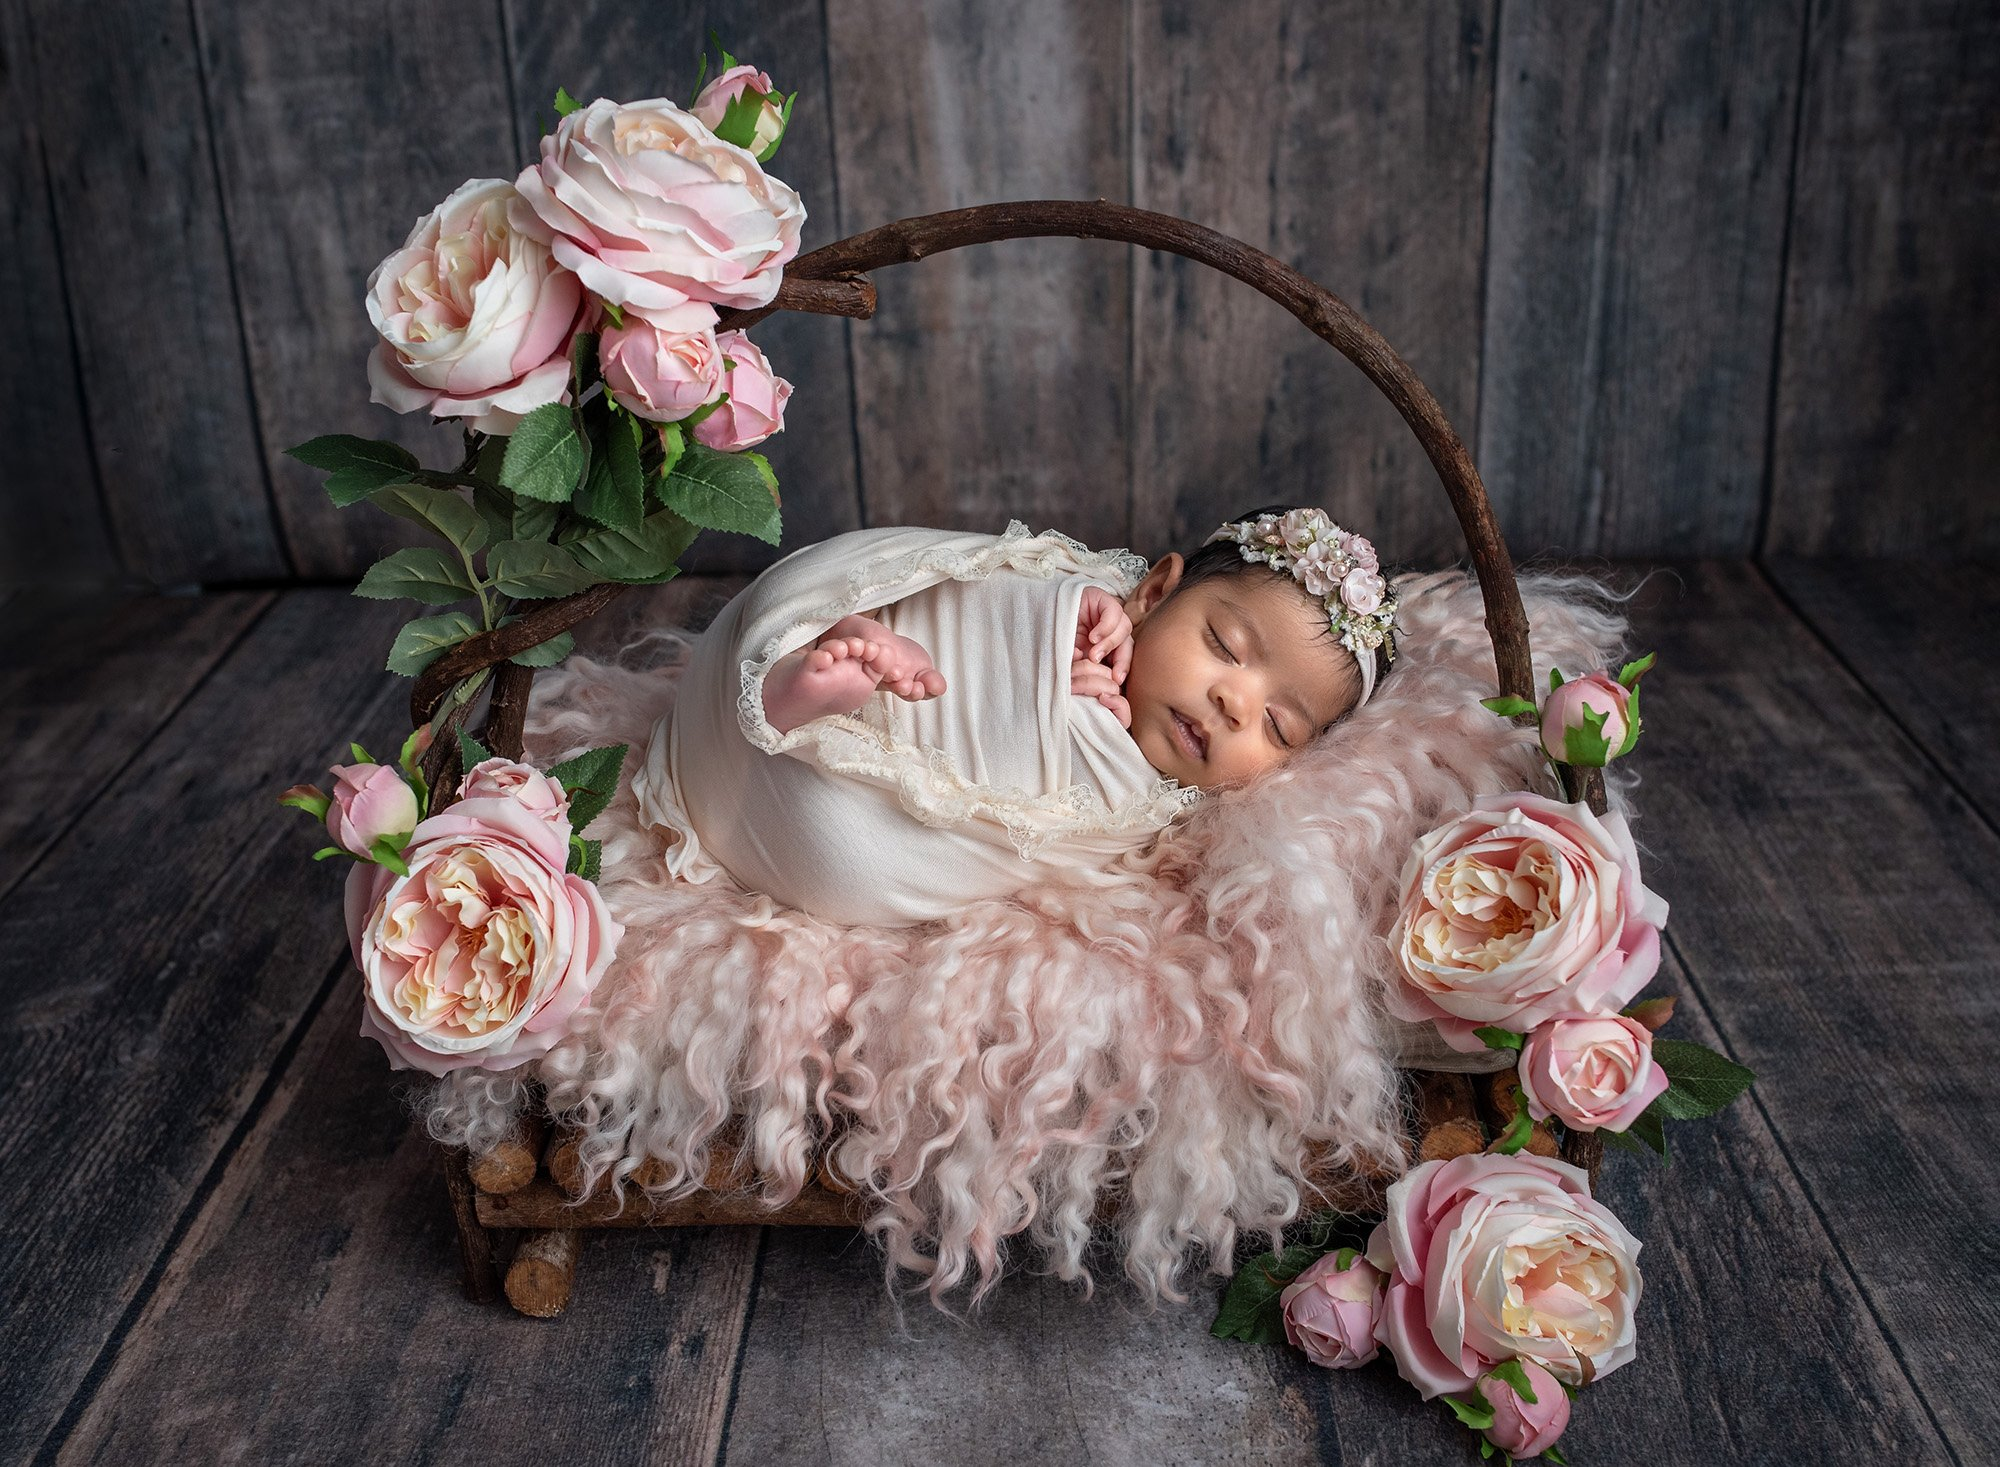 newborn baby girl swaddled in lace wrap sleeping on top of rustic wooden bed with pink fuzzy blanket surrounded by pink flowers on wooden background